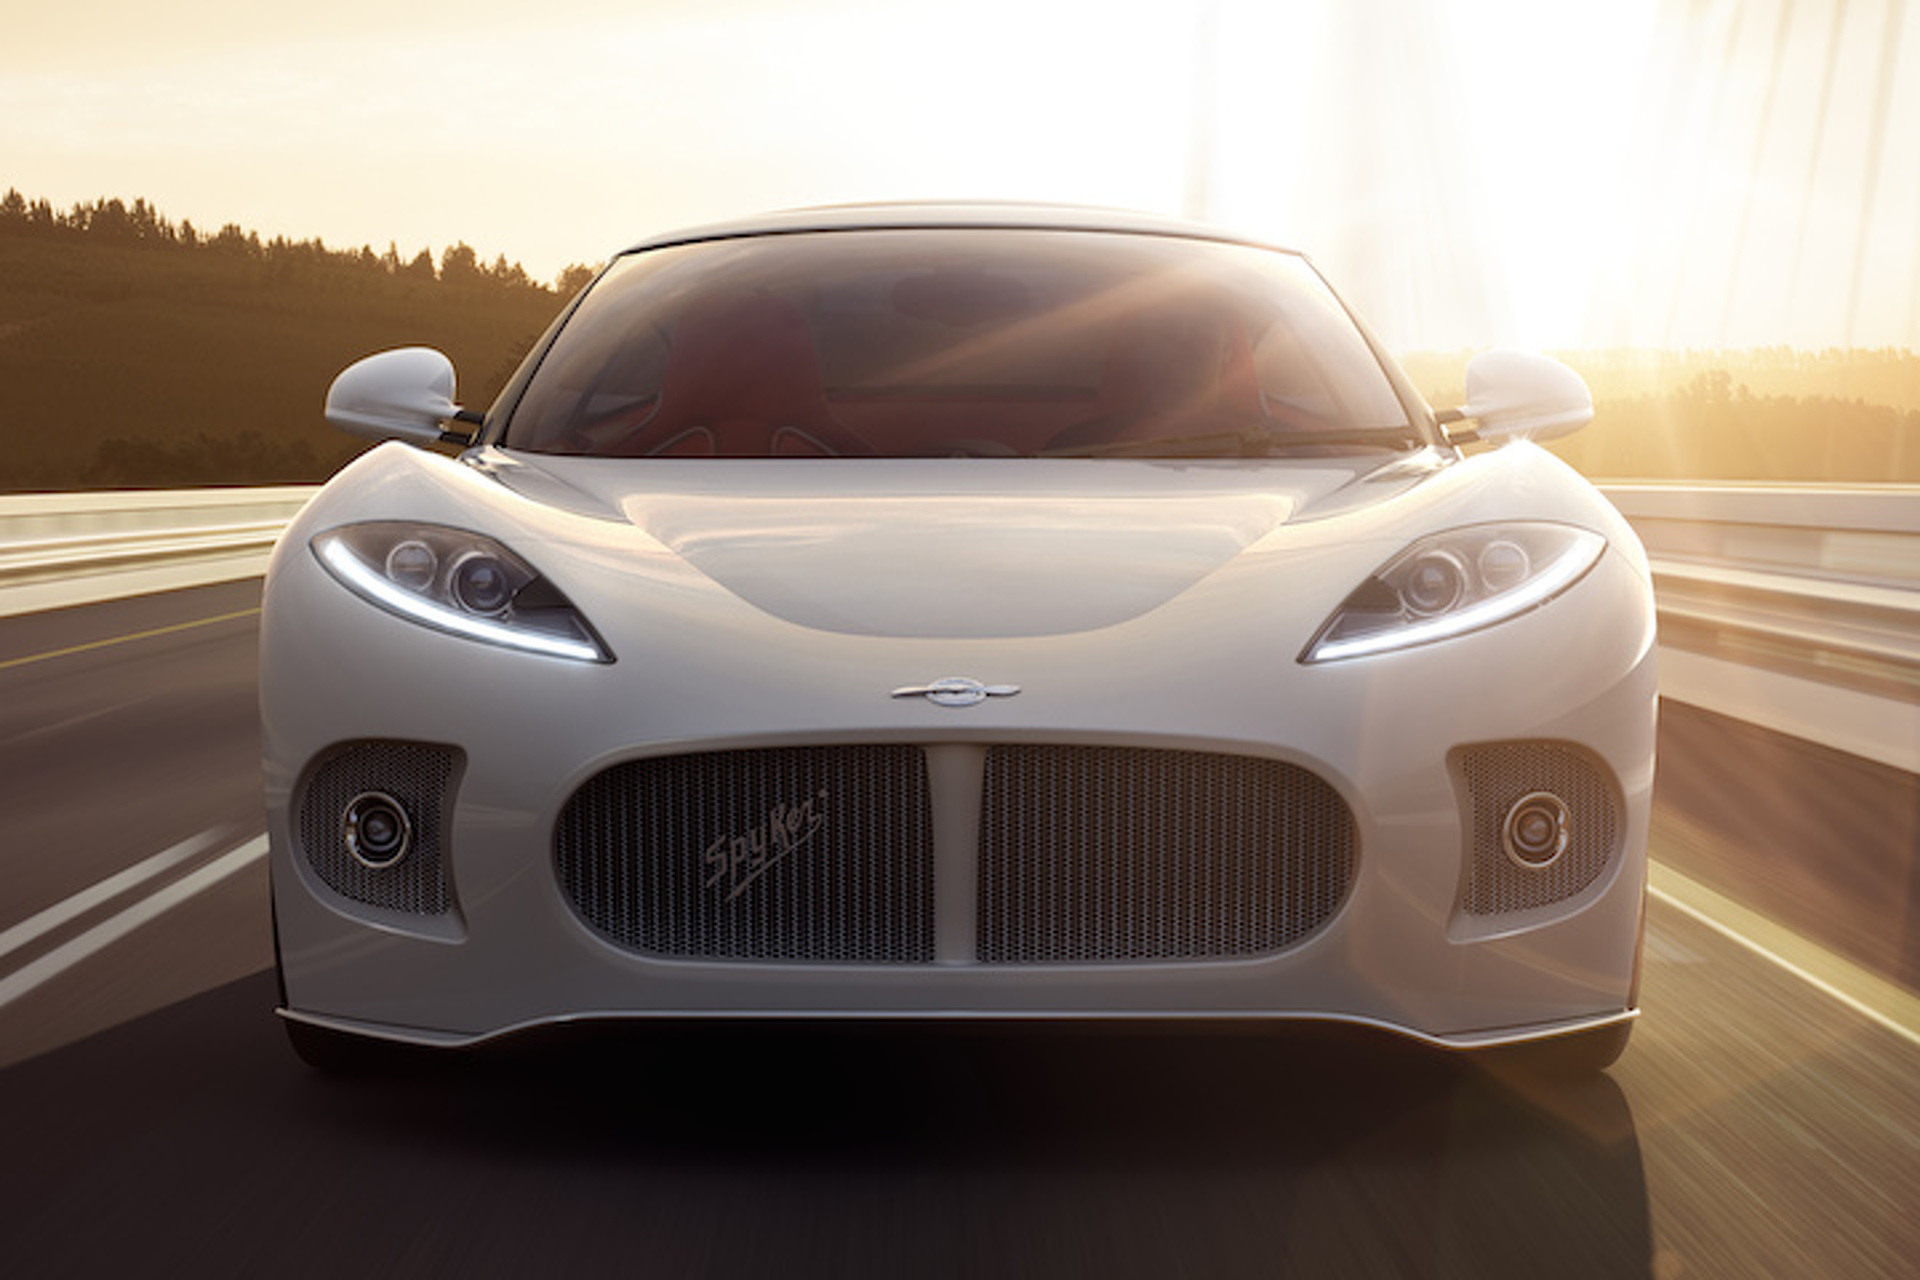 Spyker Isn't Bankrupt After All